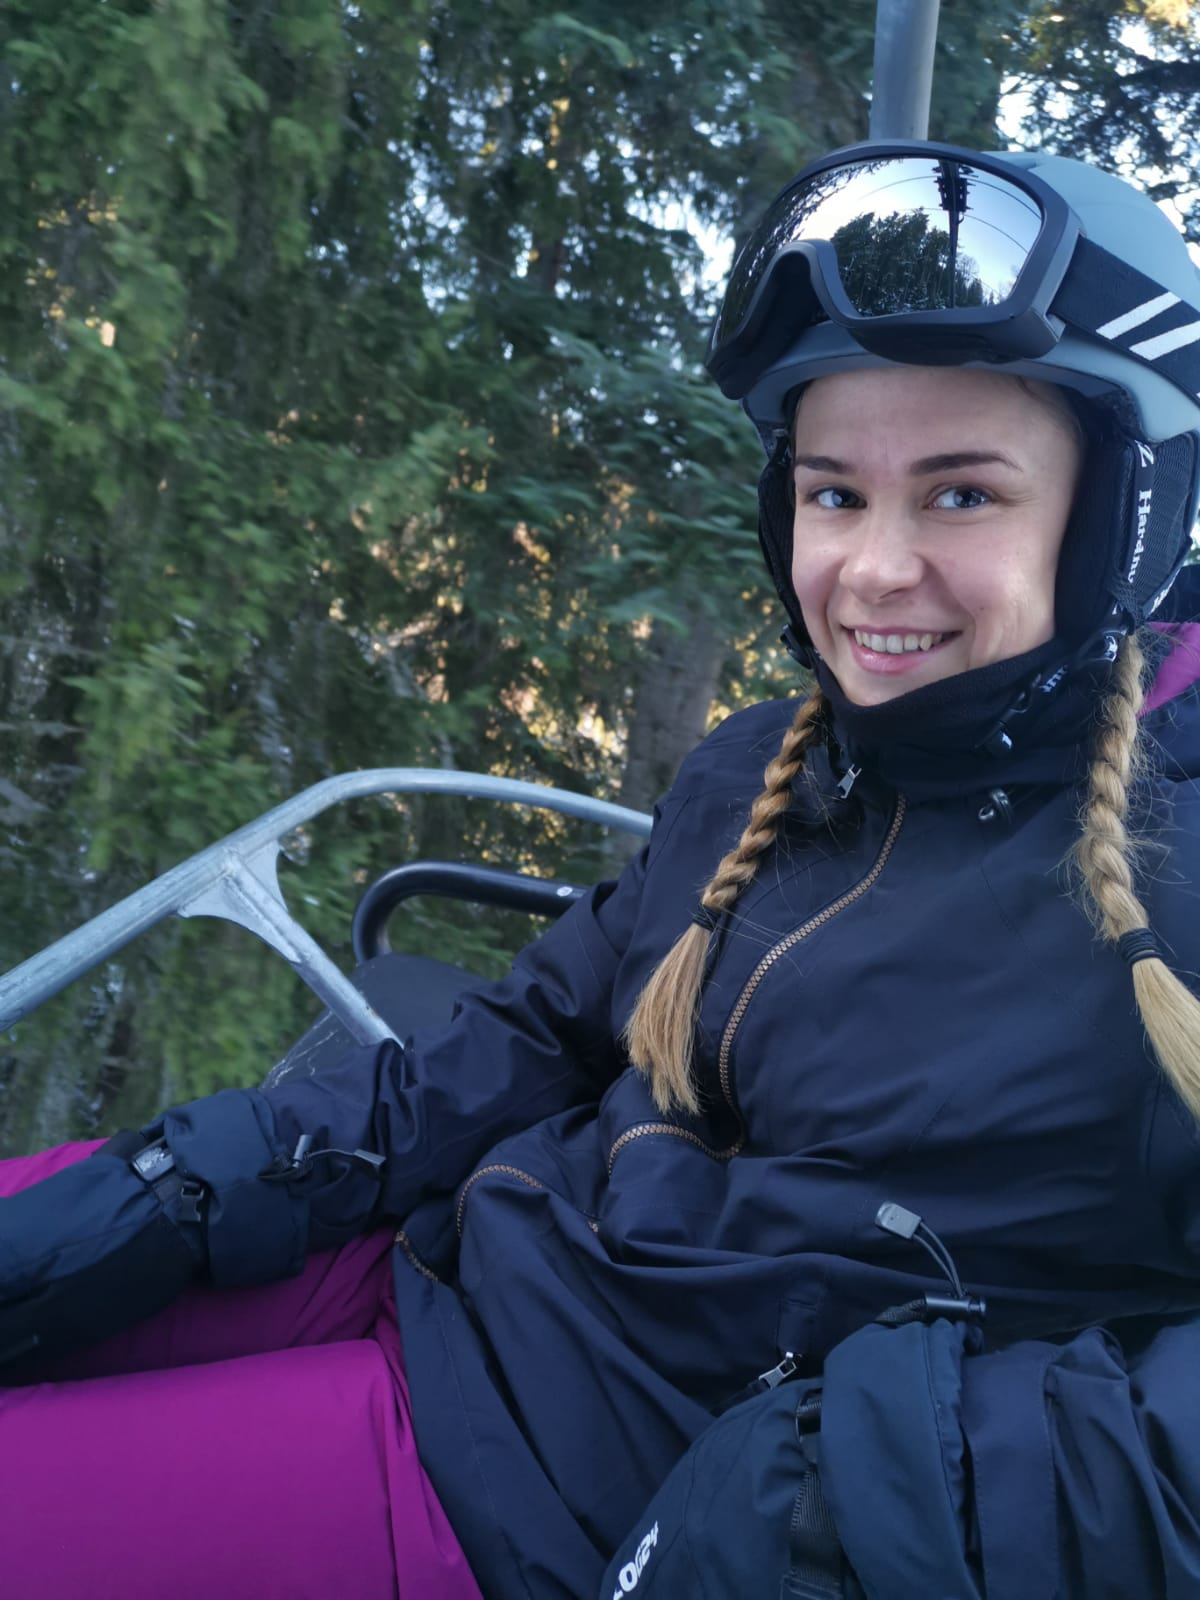 Josie Hewson pictured on a ski lift whilst wearing skiing gear including a thick black coat and purple ski trousers!